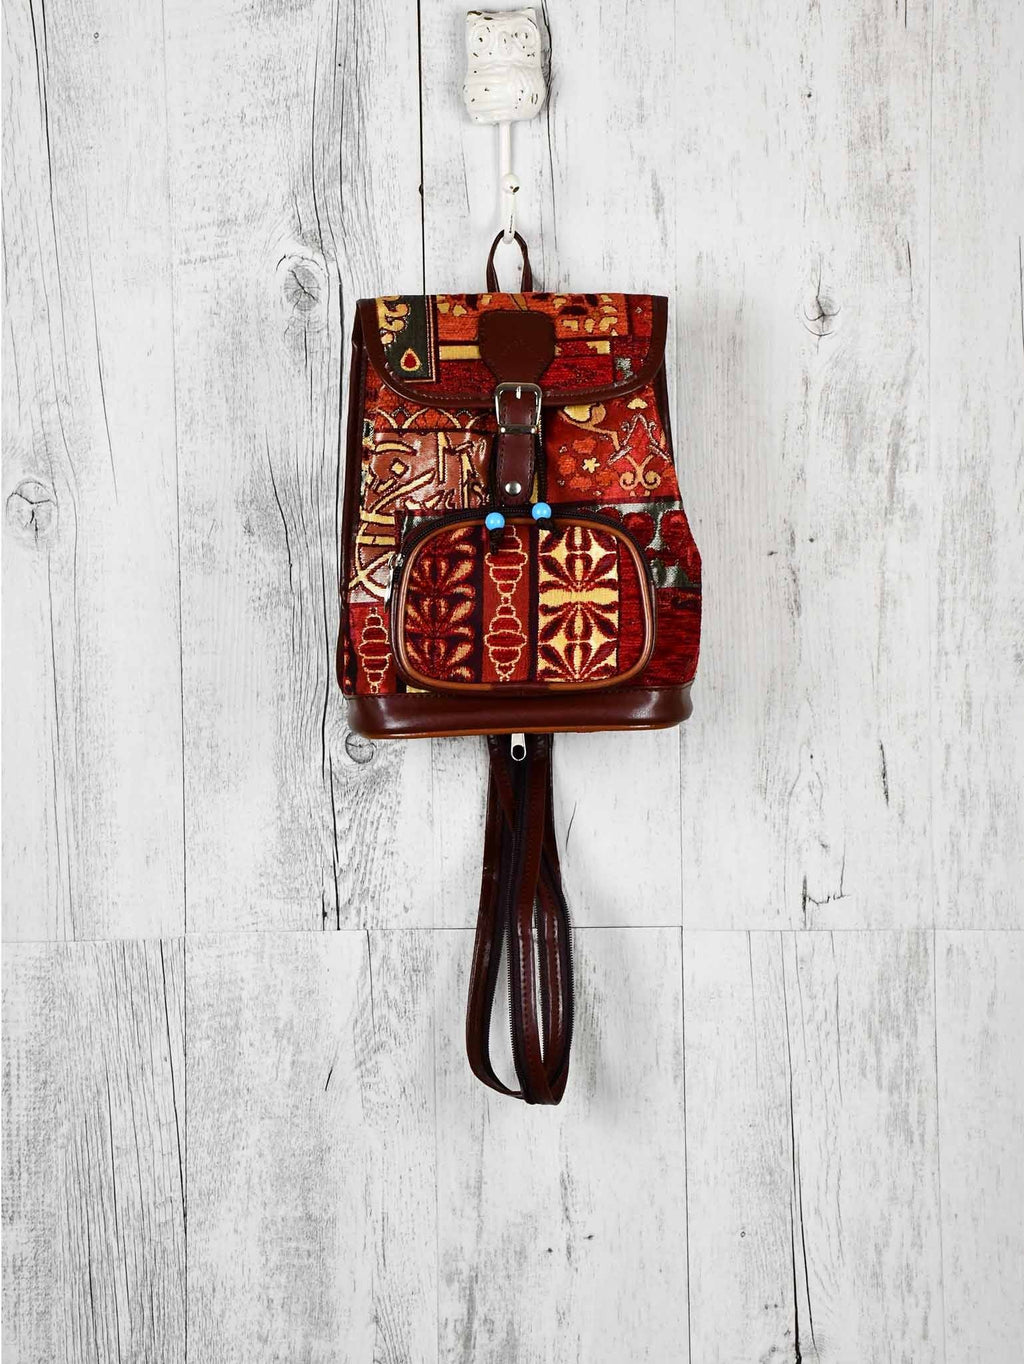 Turkish Handbag Backpack Patchwork Red Rusty Textile Sydney Grand Bazaar